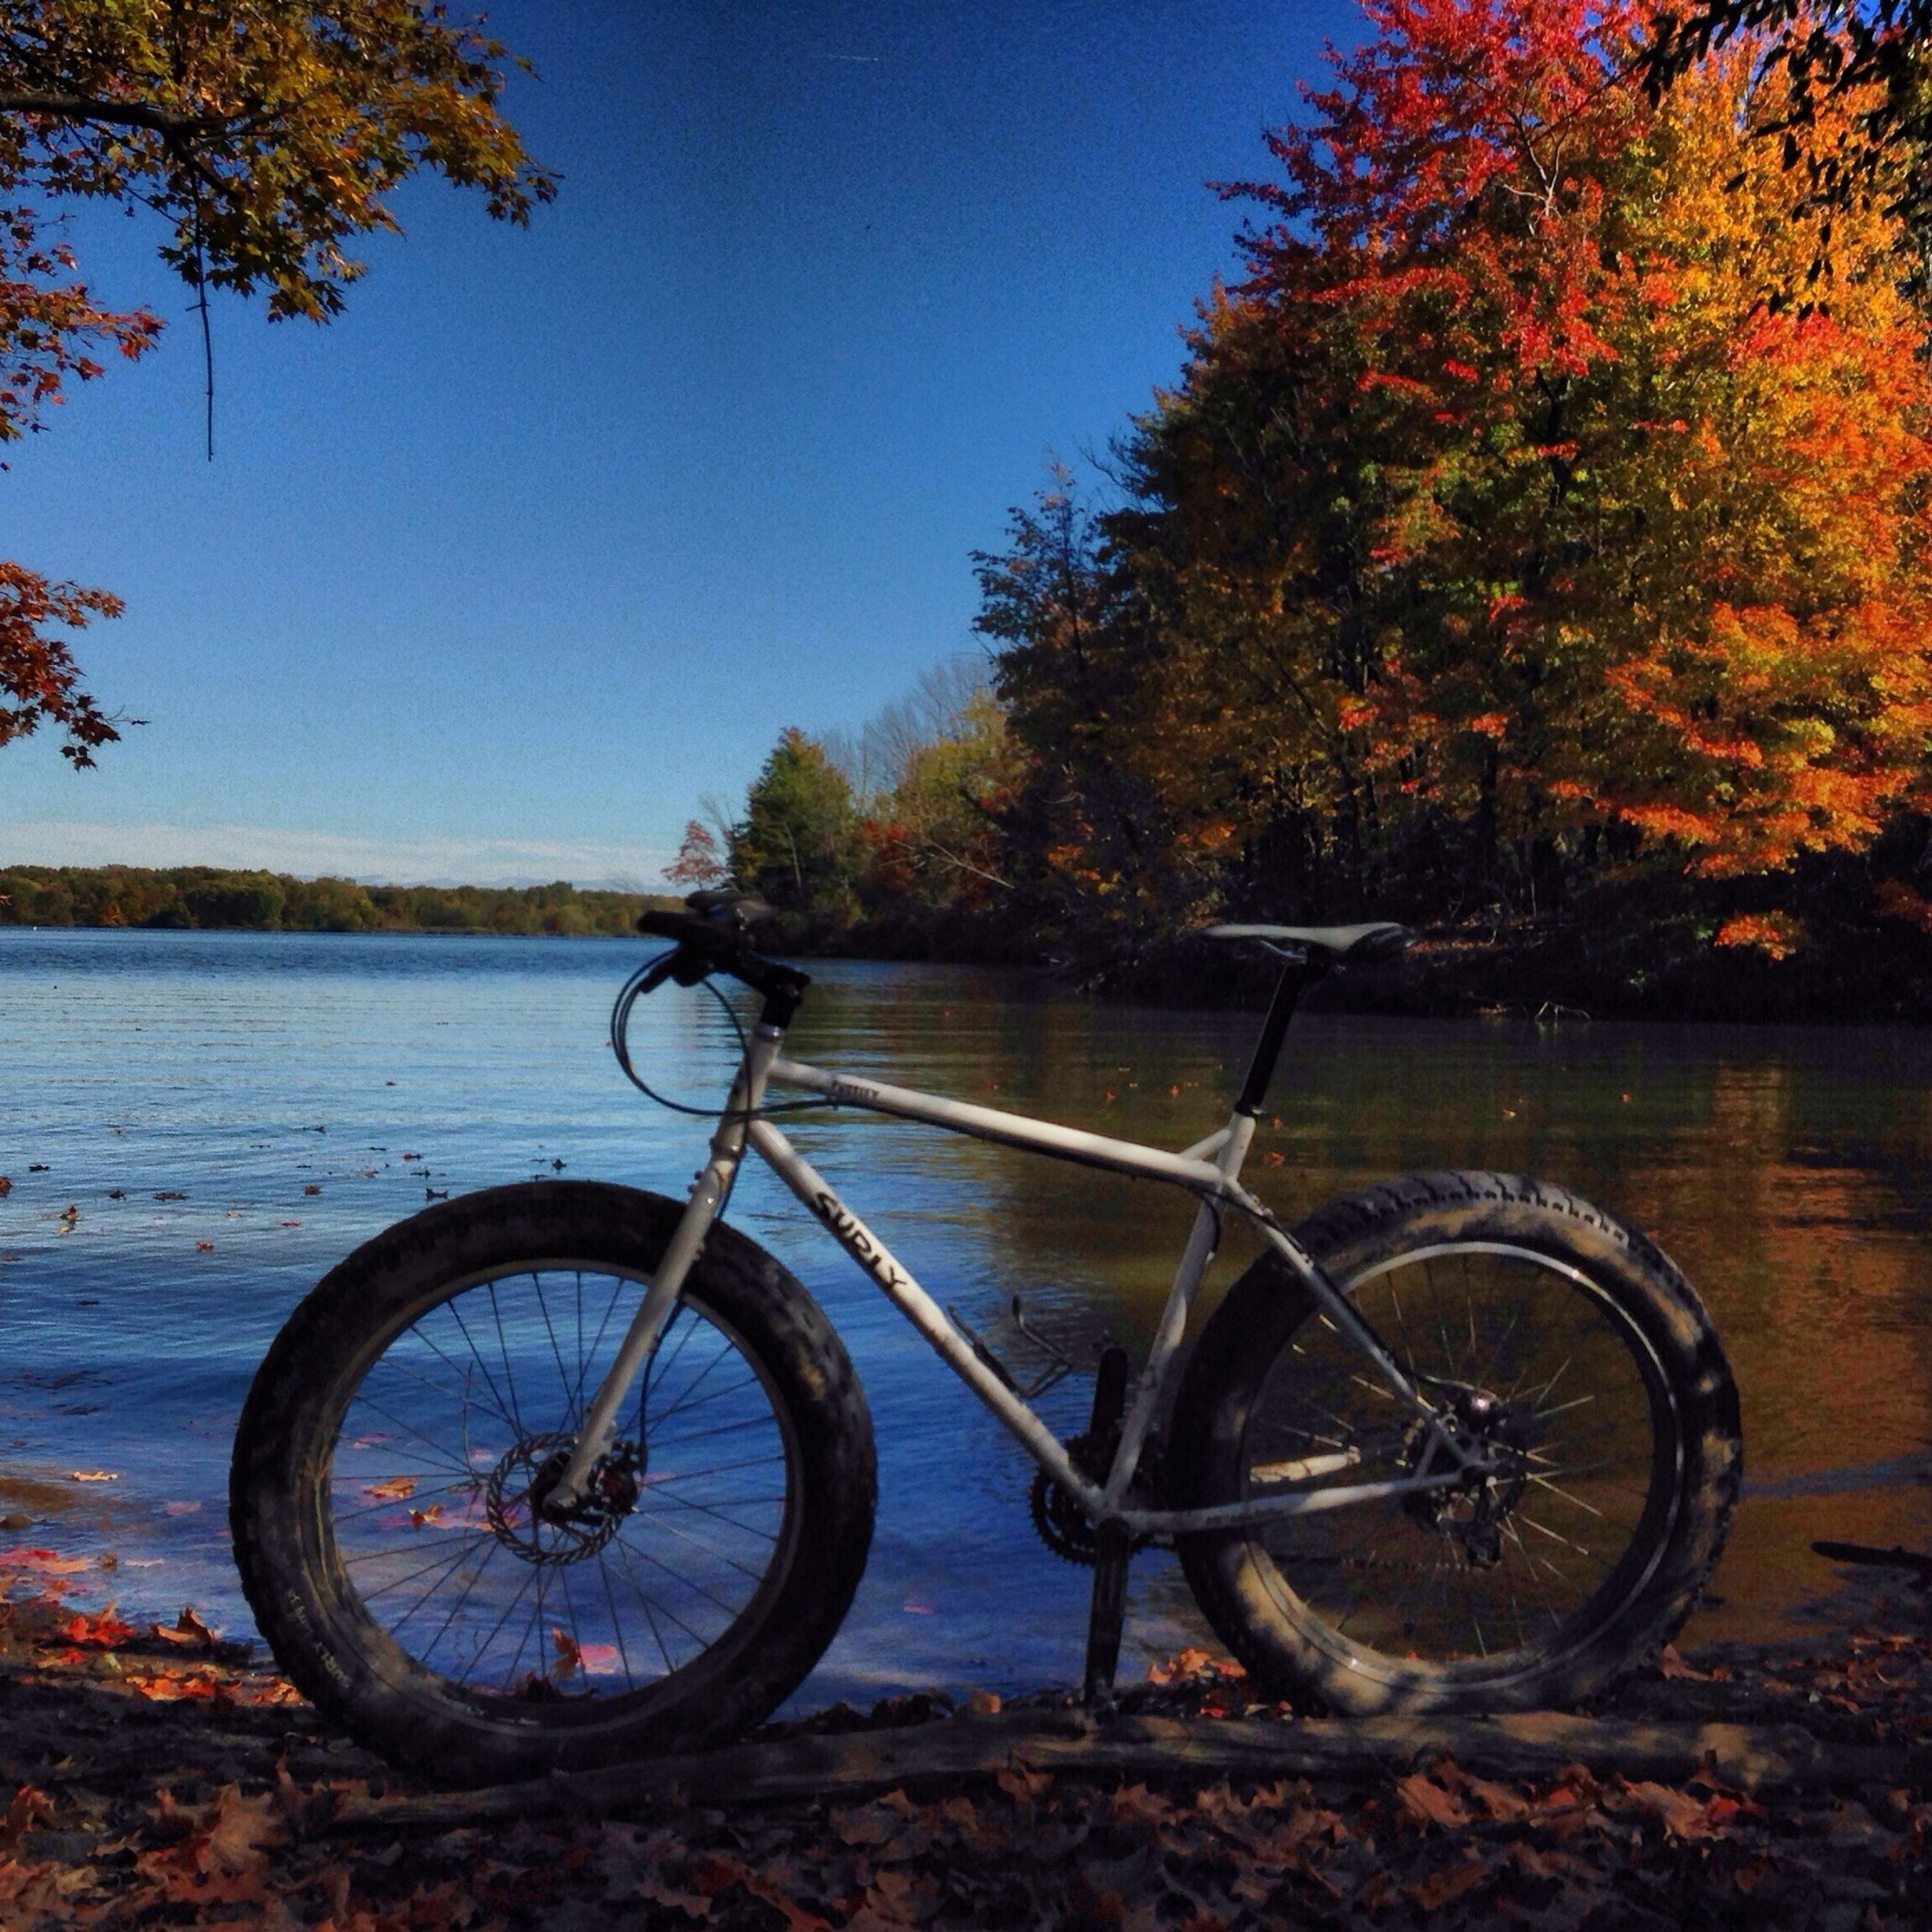 bicycle, tree, water, mode of transport, transportation, lake, tranquility, stationary, tranquil scene, branch, river, land vehicle, parking, lakeshore, nature, scenics, beauty in nature, parked, blue, sky